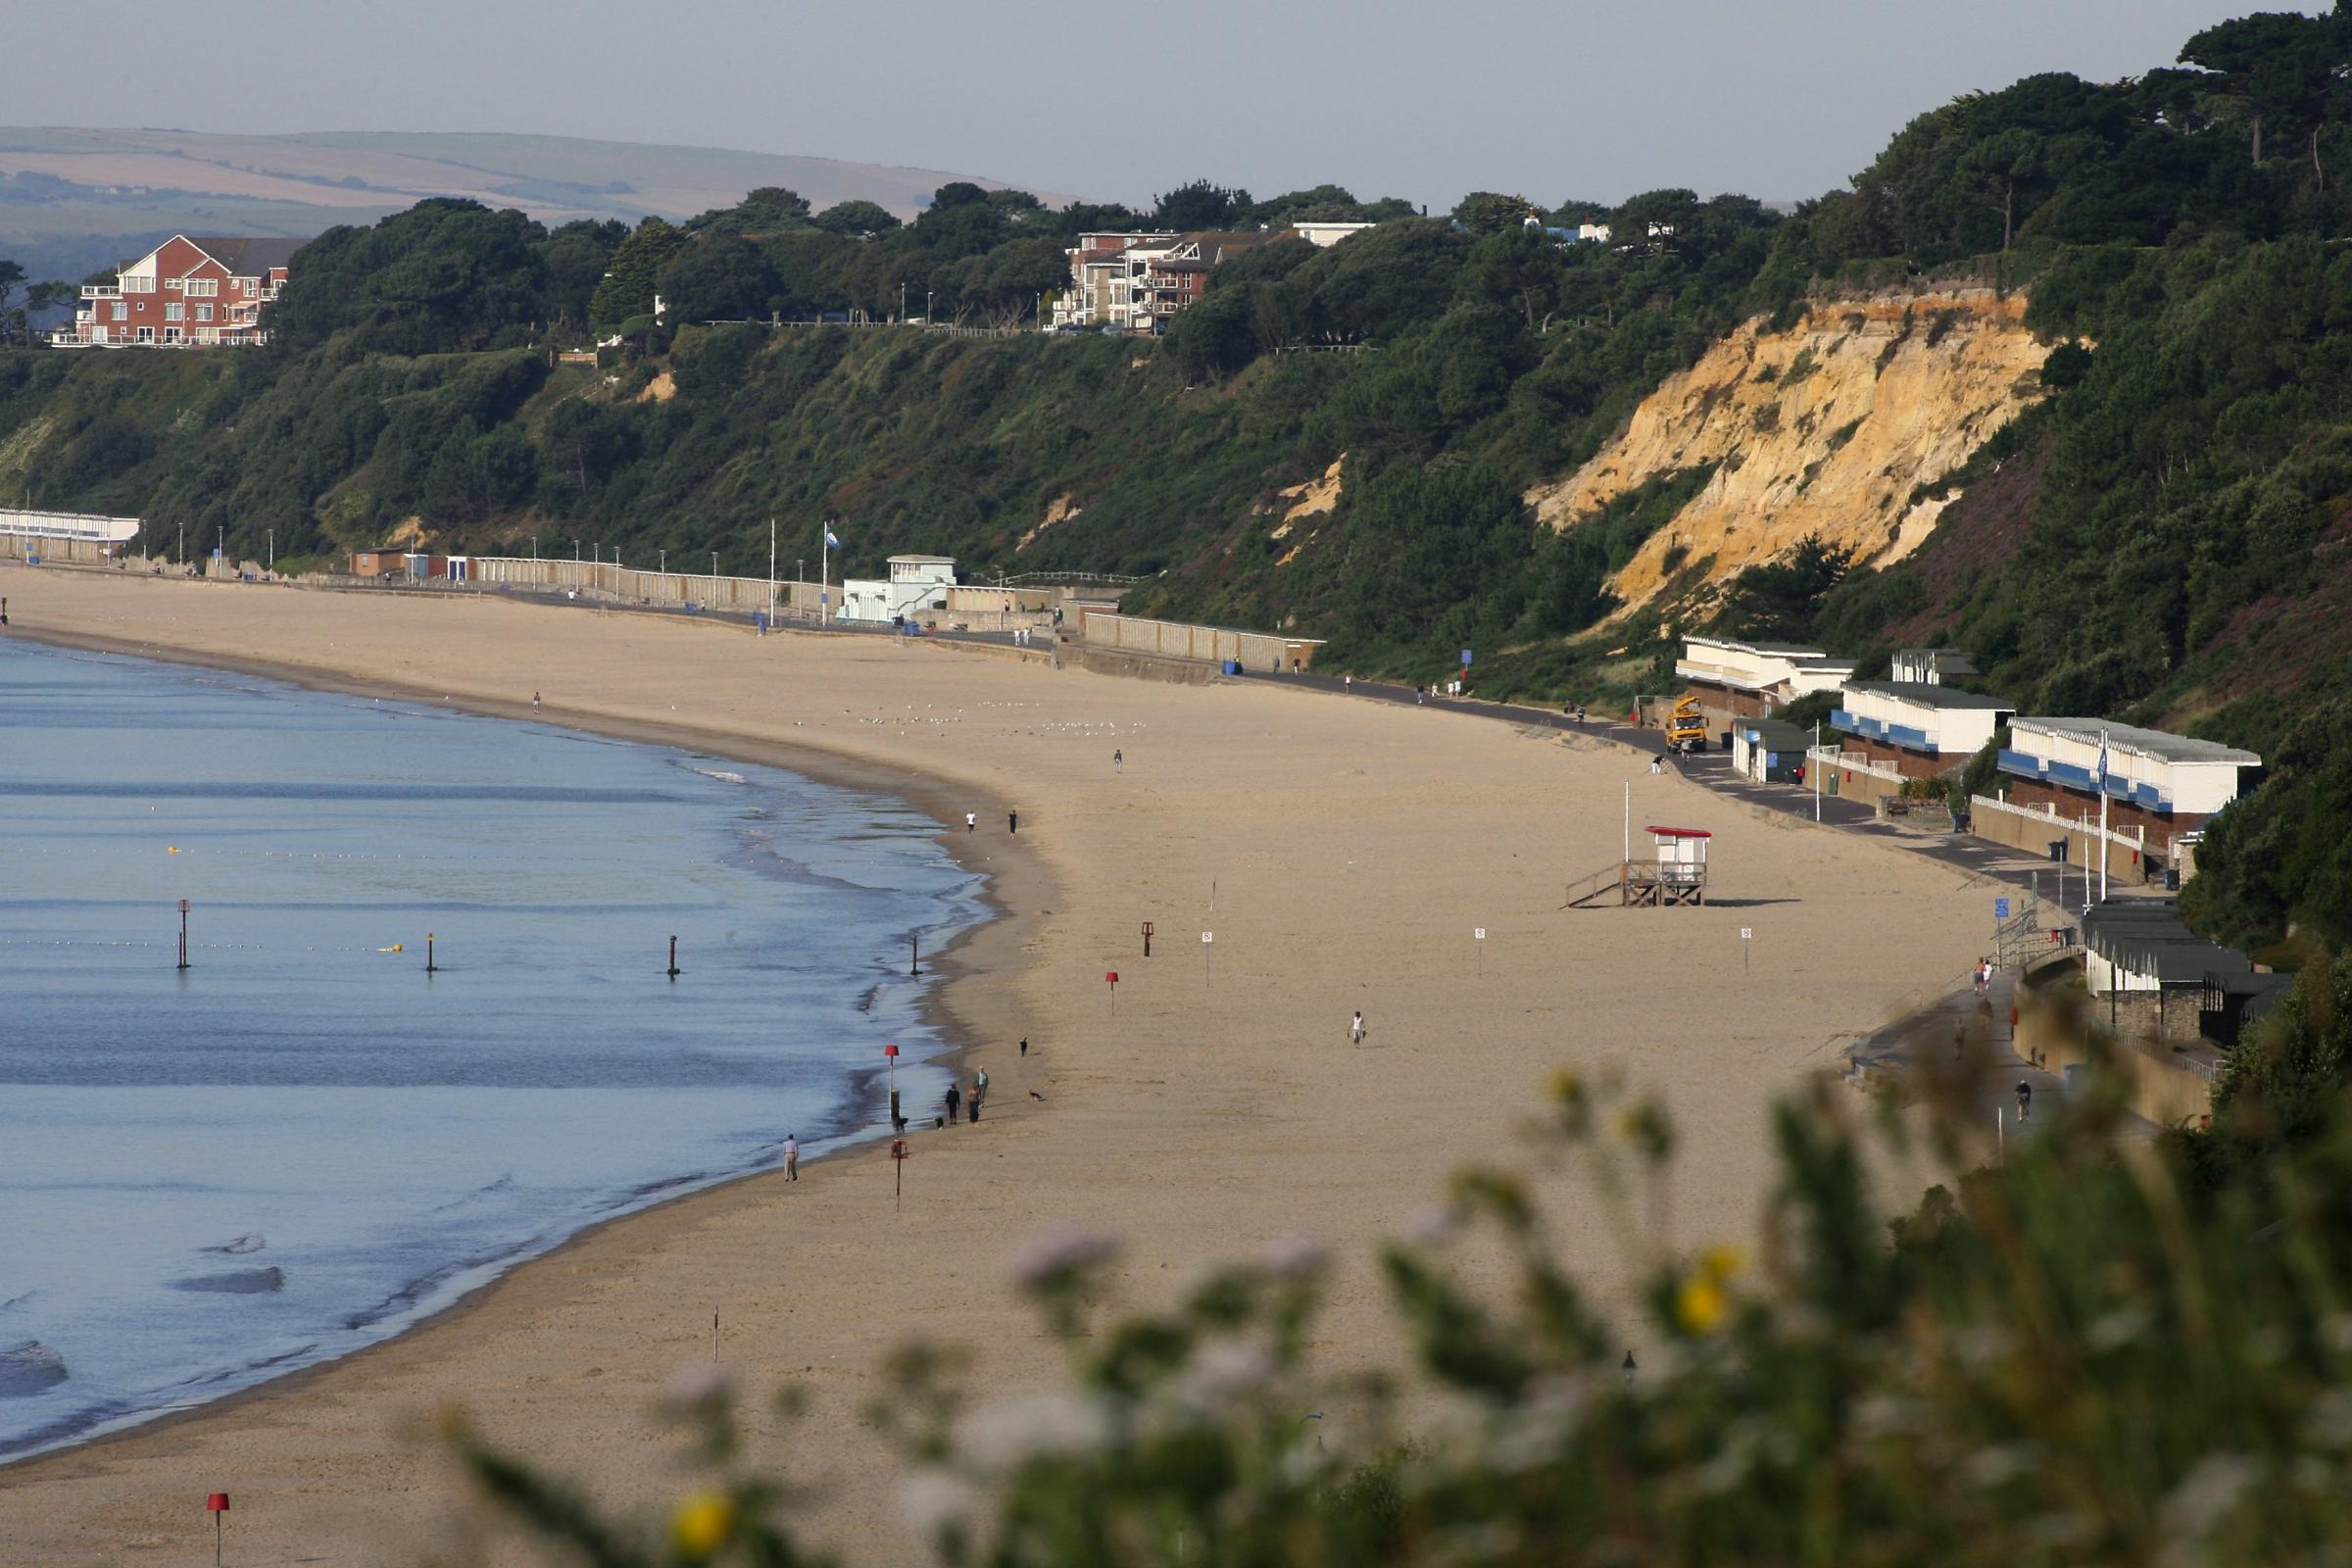 Surf life saving championships to be held in Dorset for first time